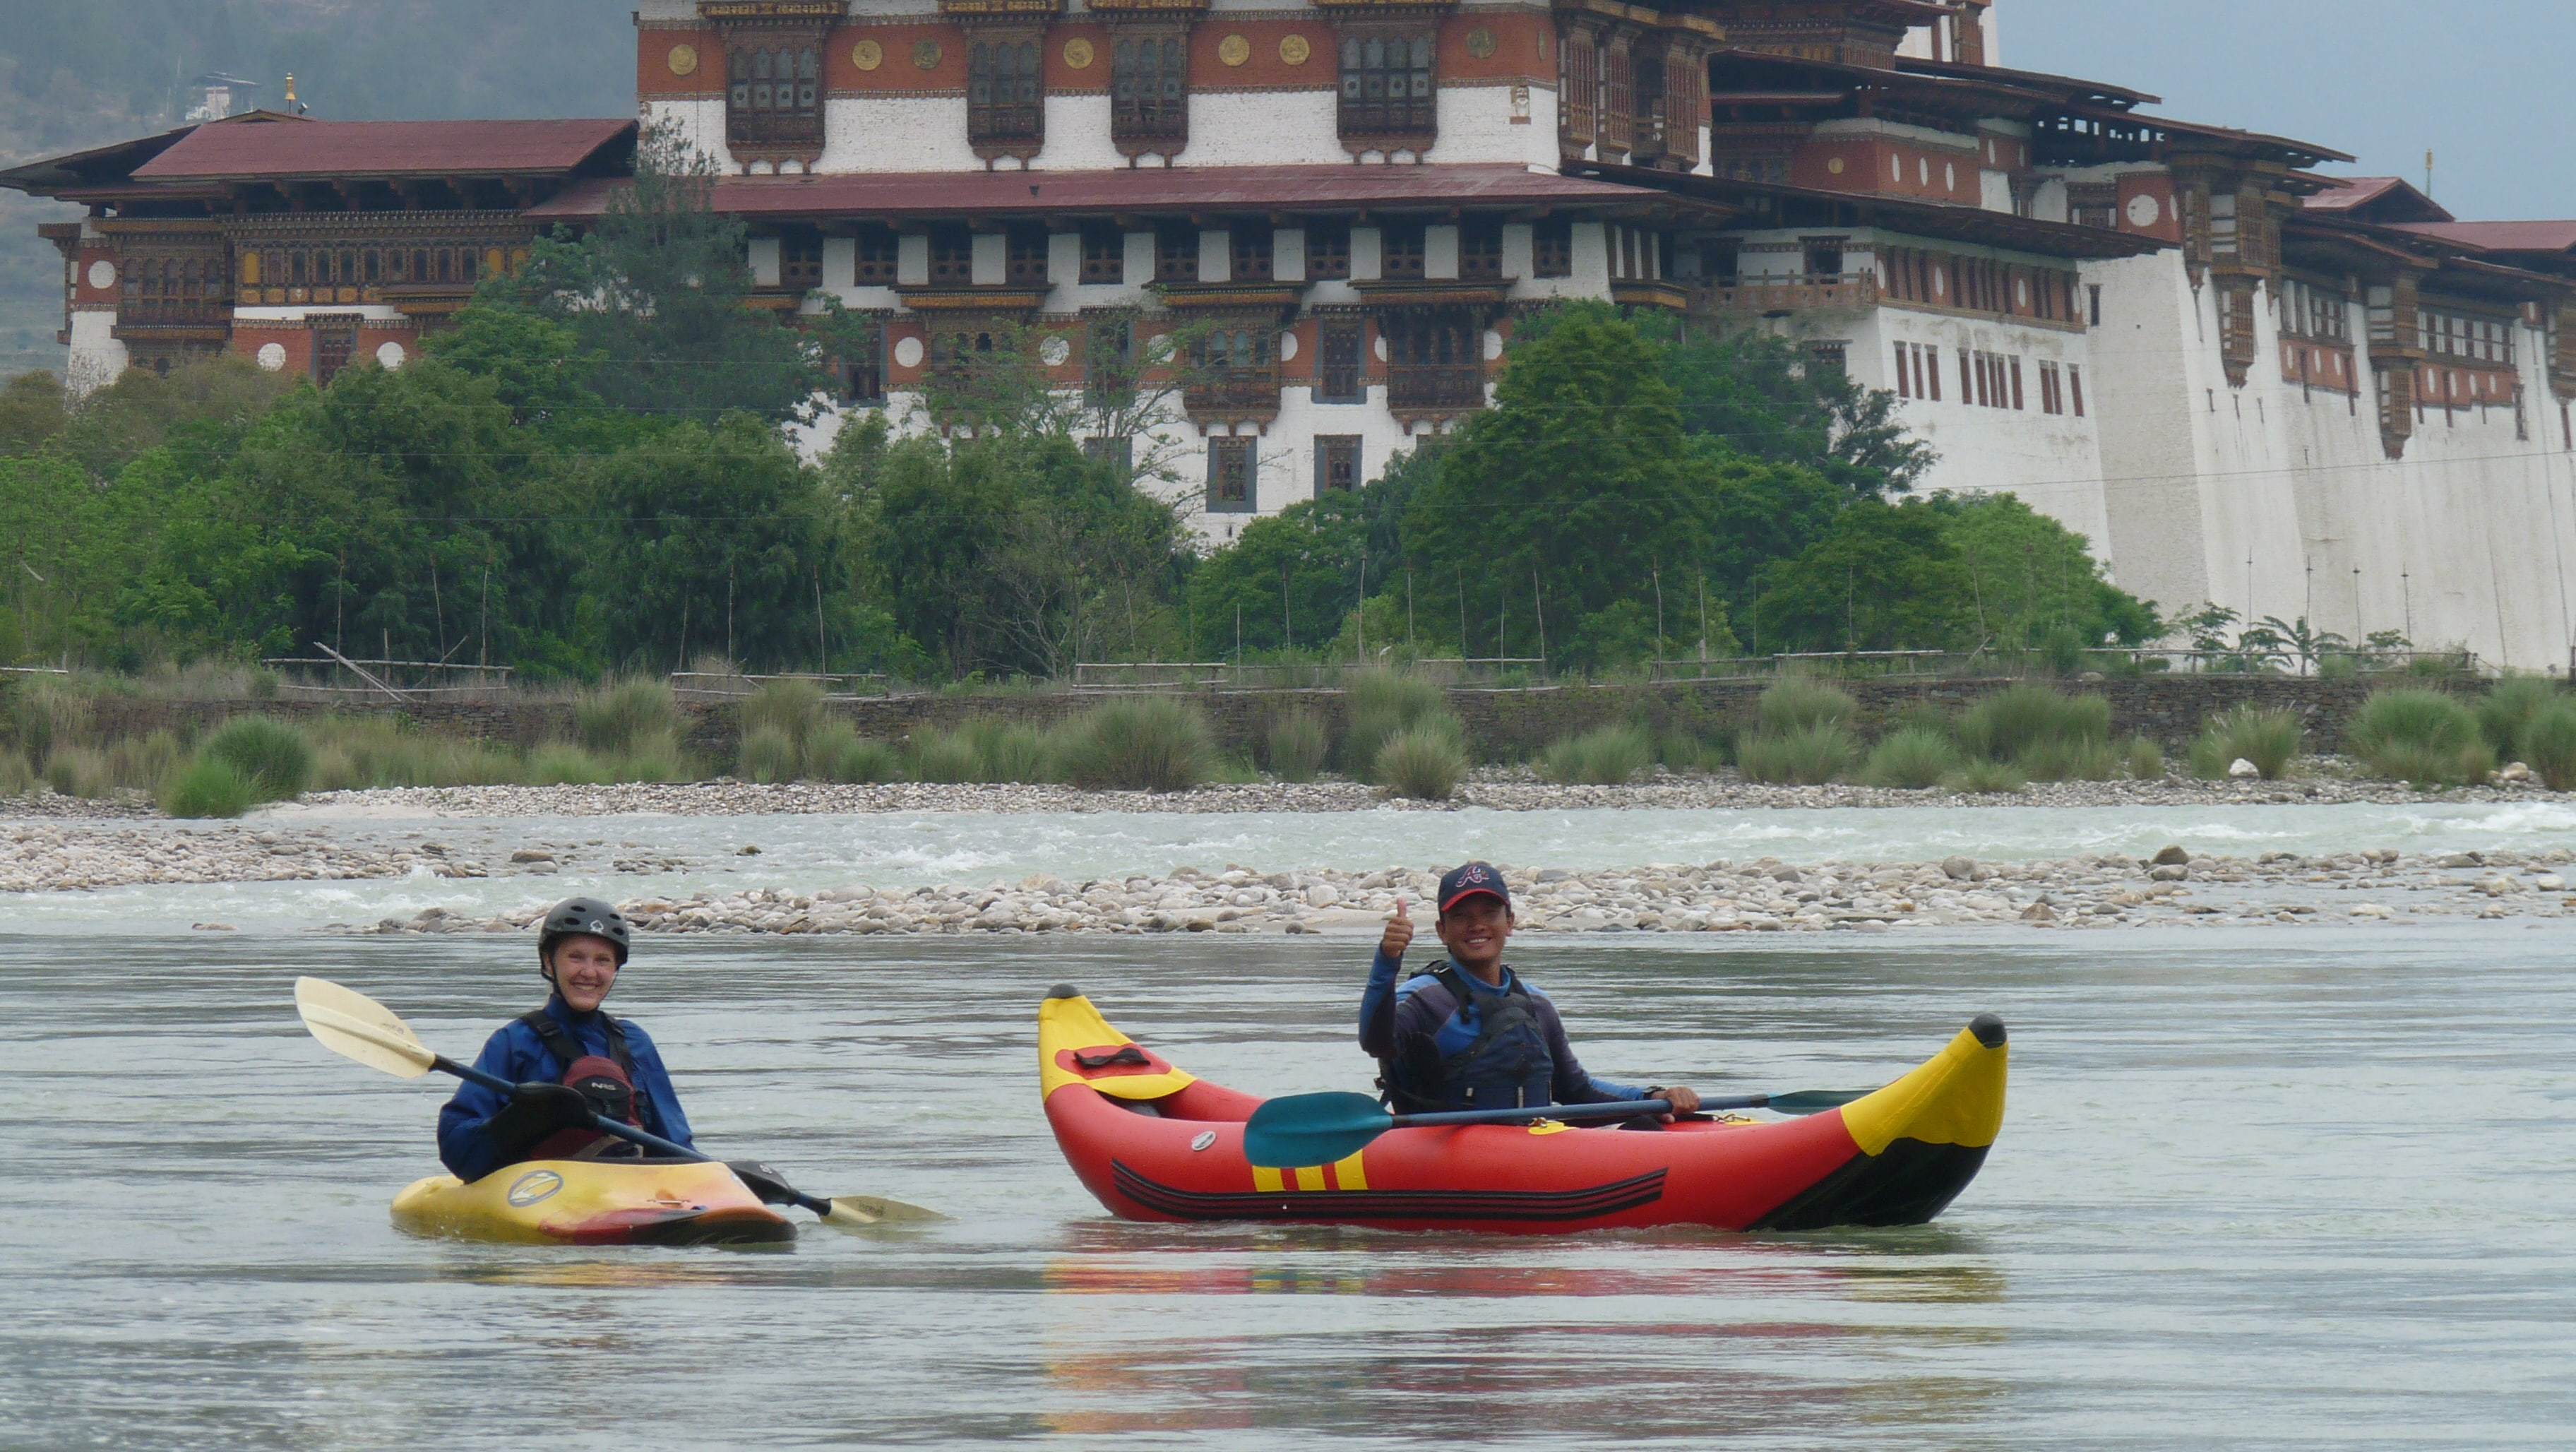 RAFTING IN BHUTANESE RIVERS